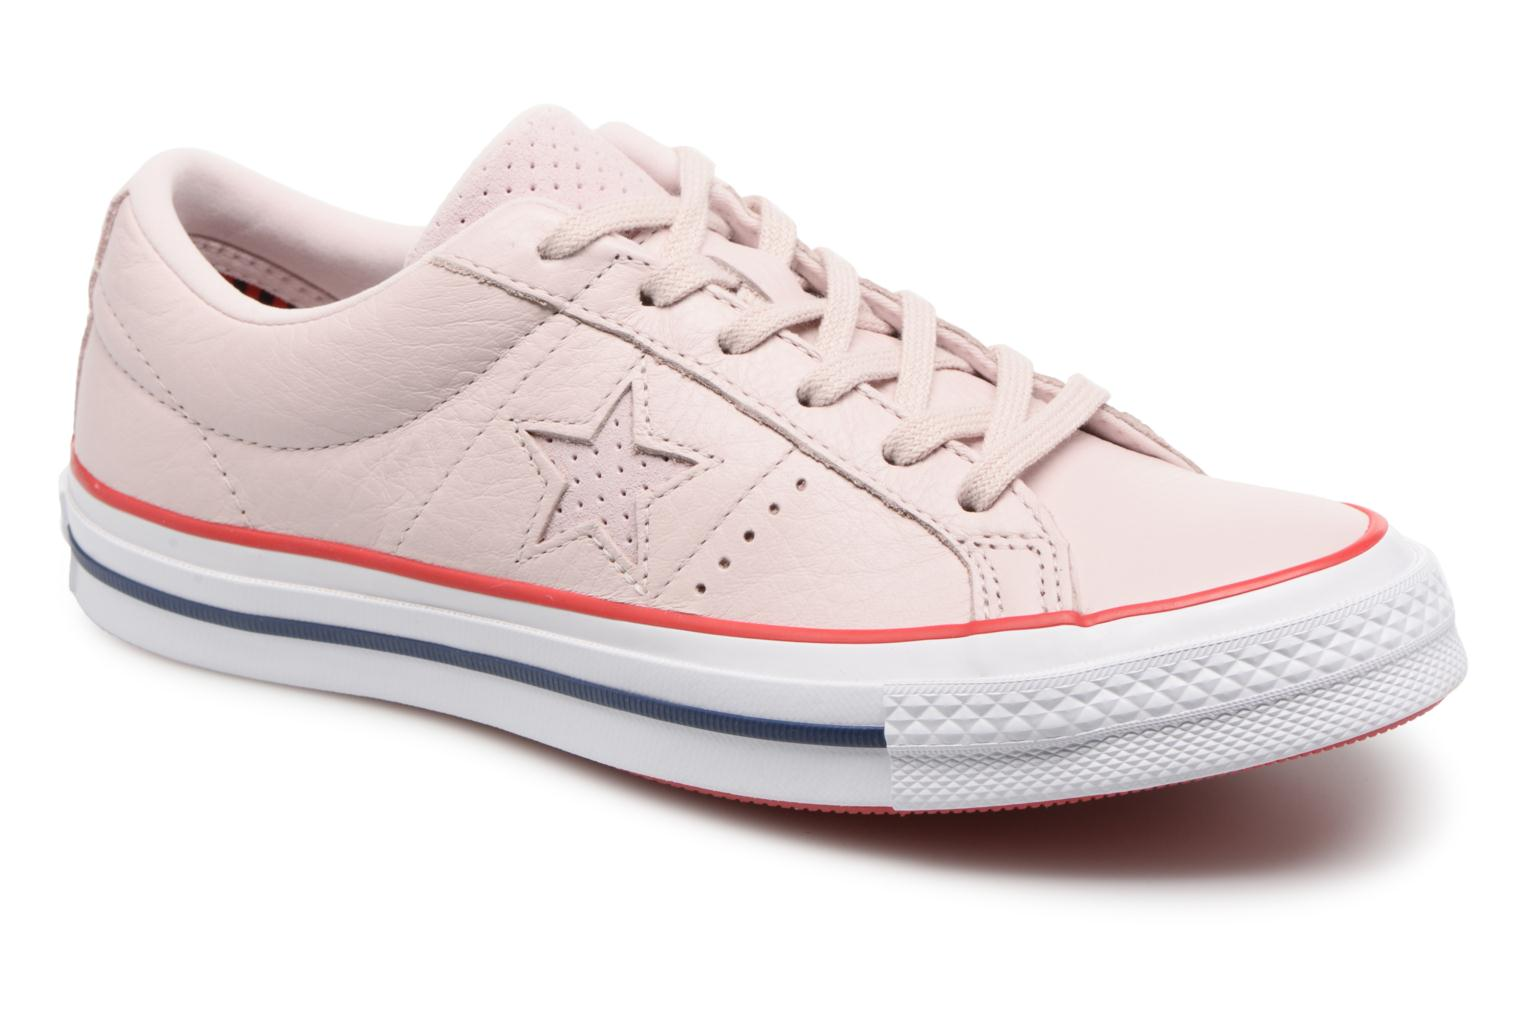 Converse One Star </br> New Heritage Ox